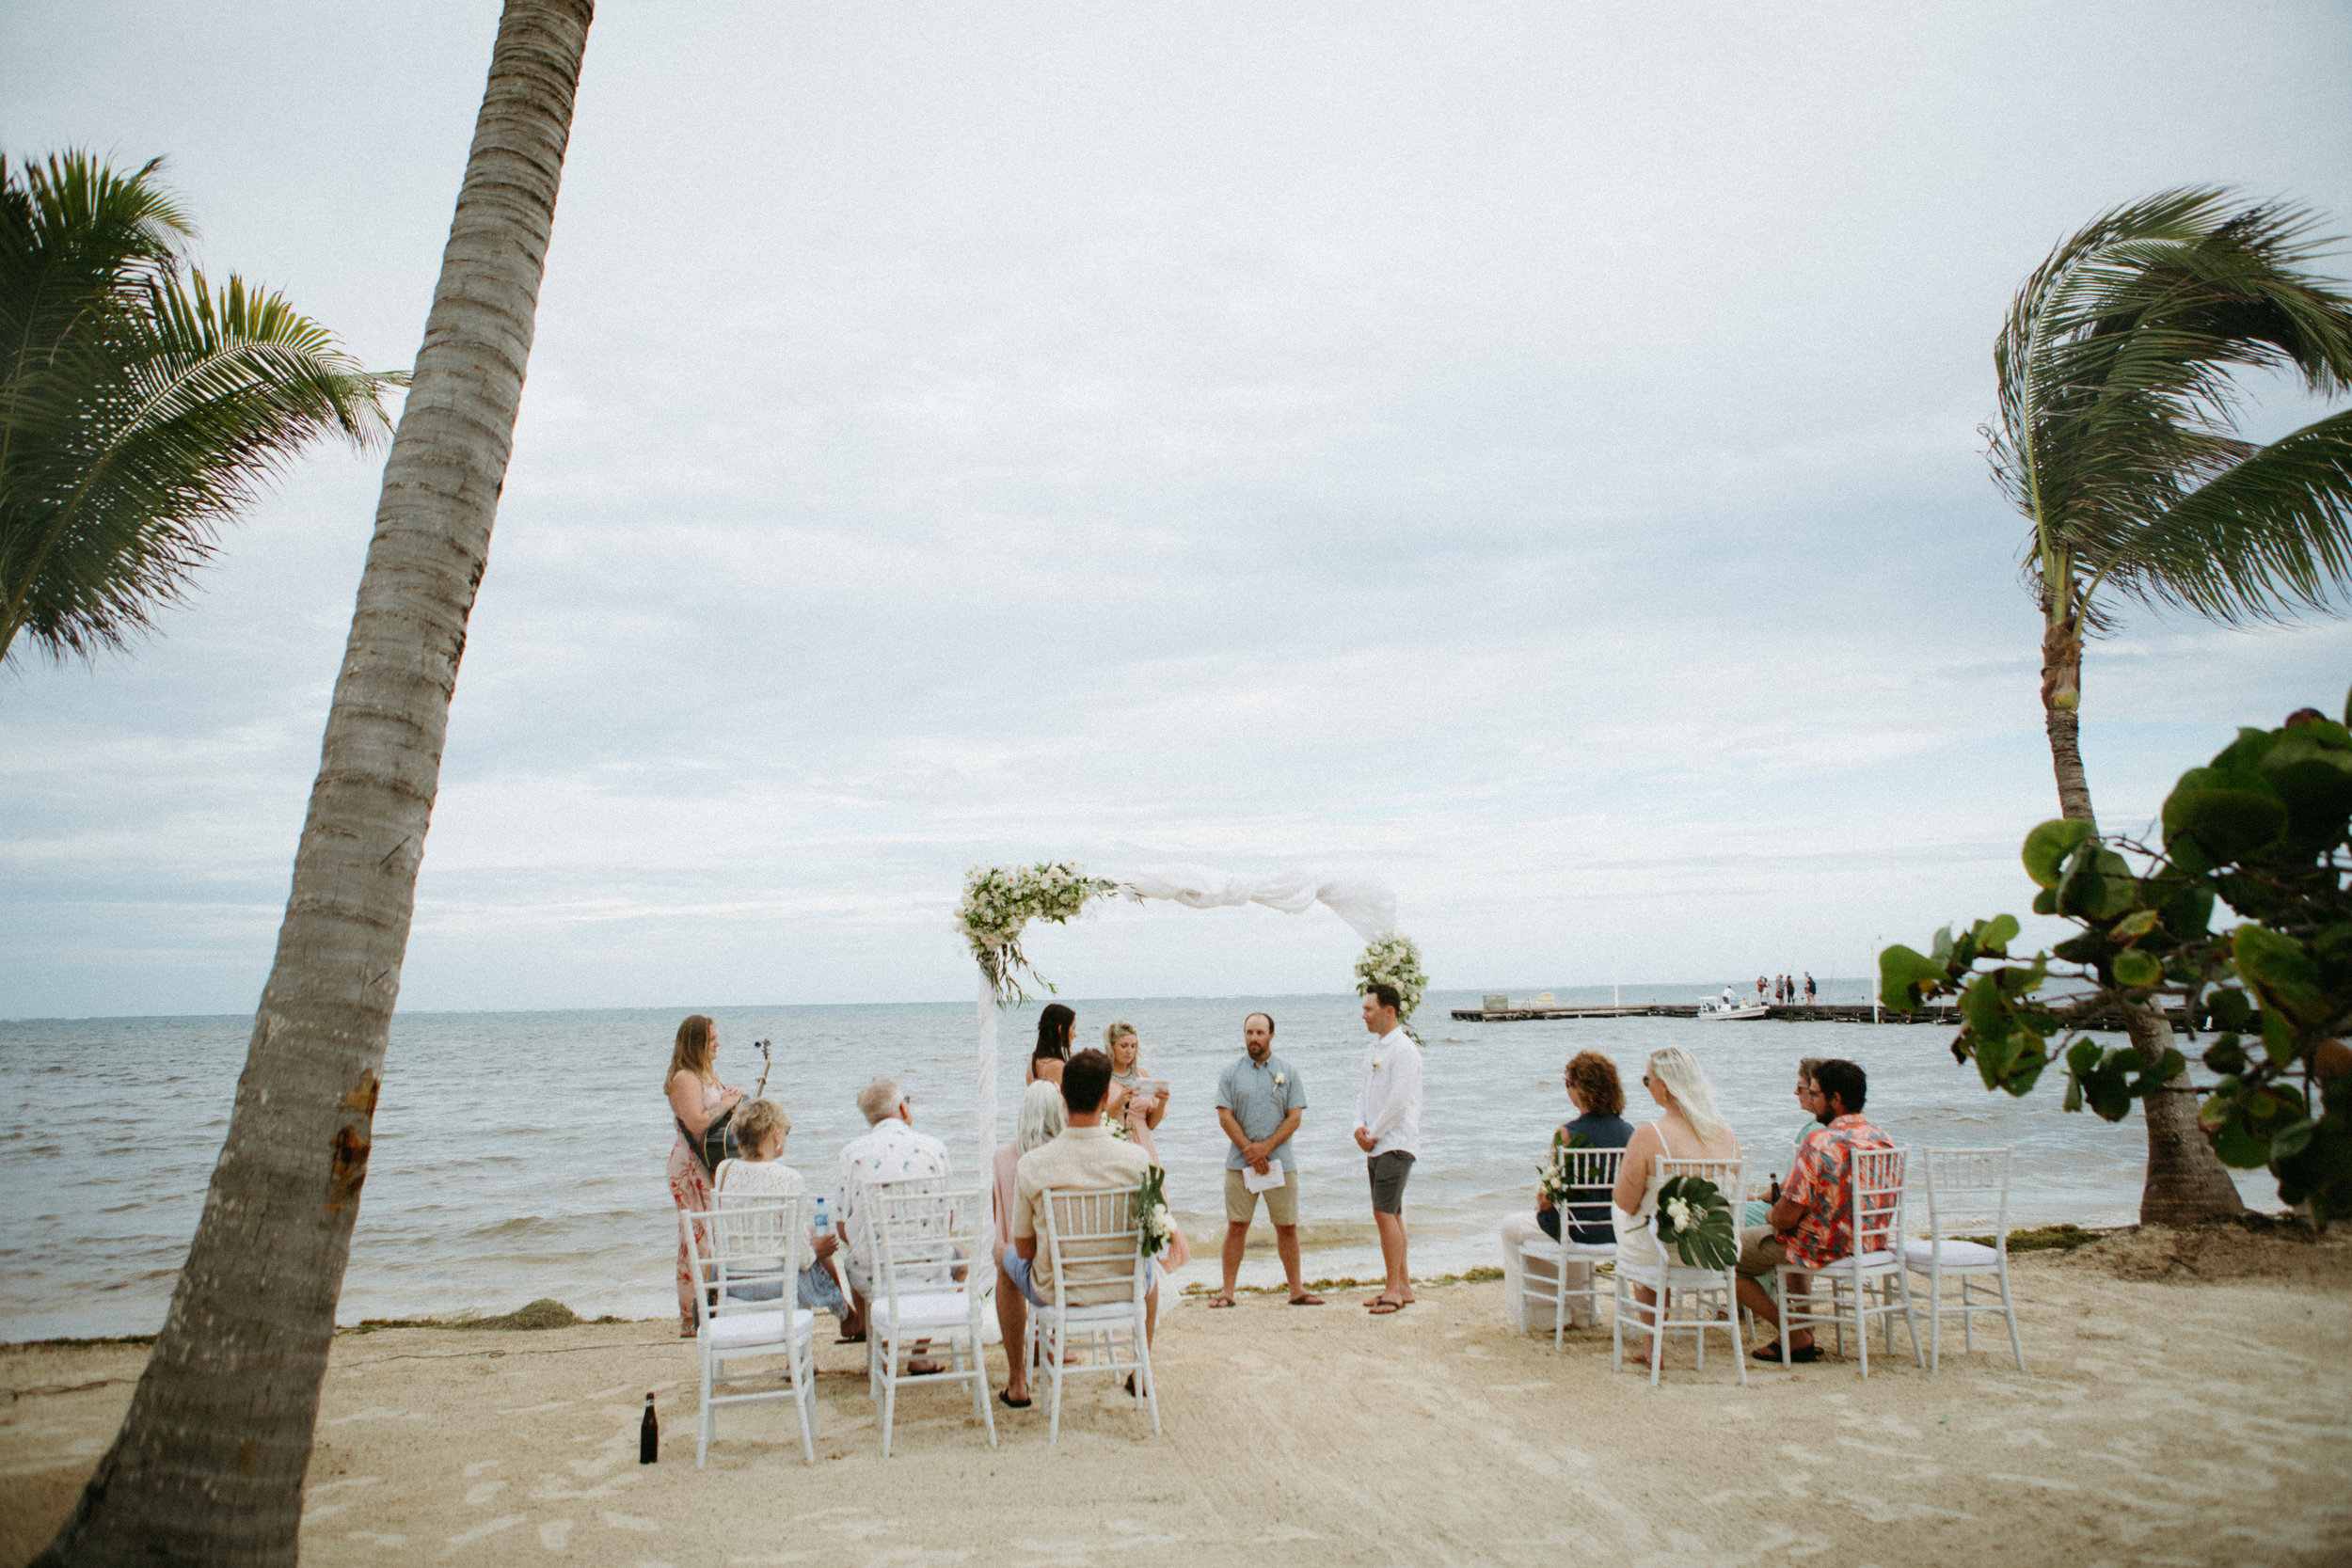 san-pescador-belize-wedding-christinemariephoto-j-k-94.jpg